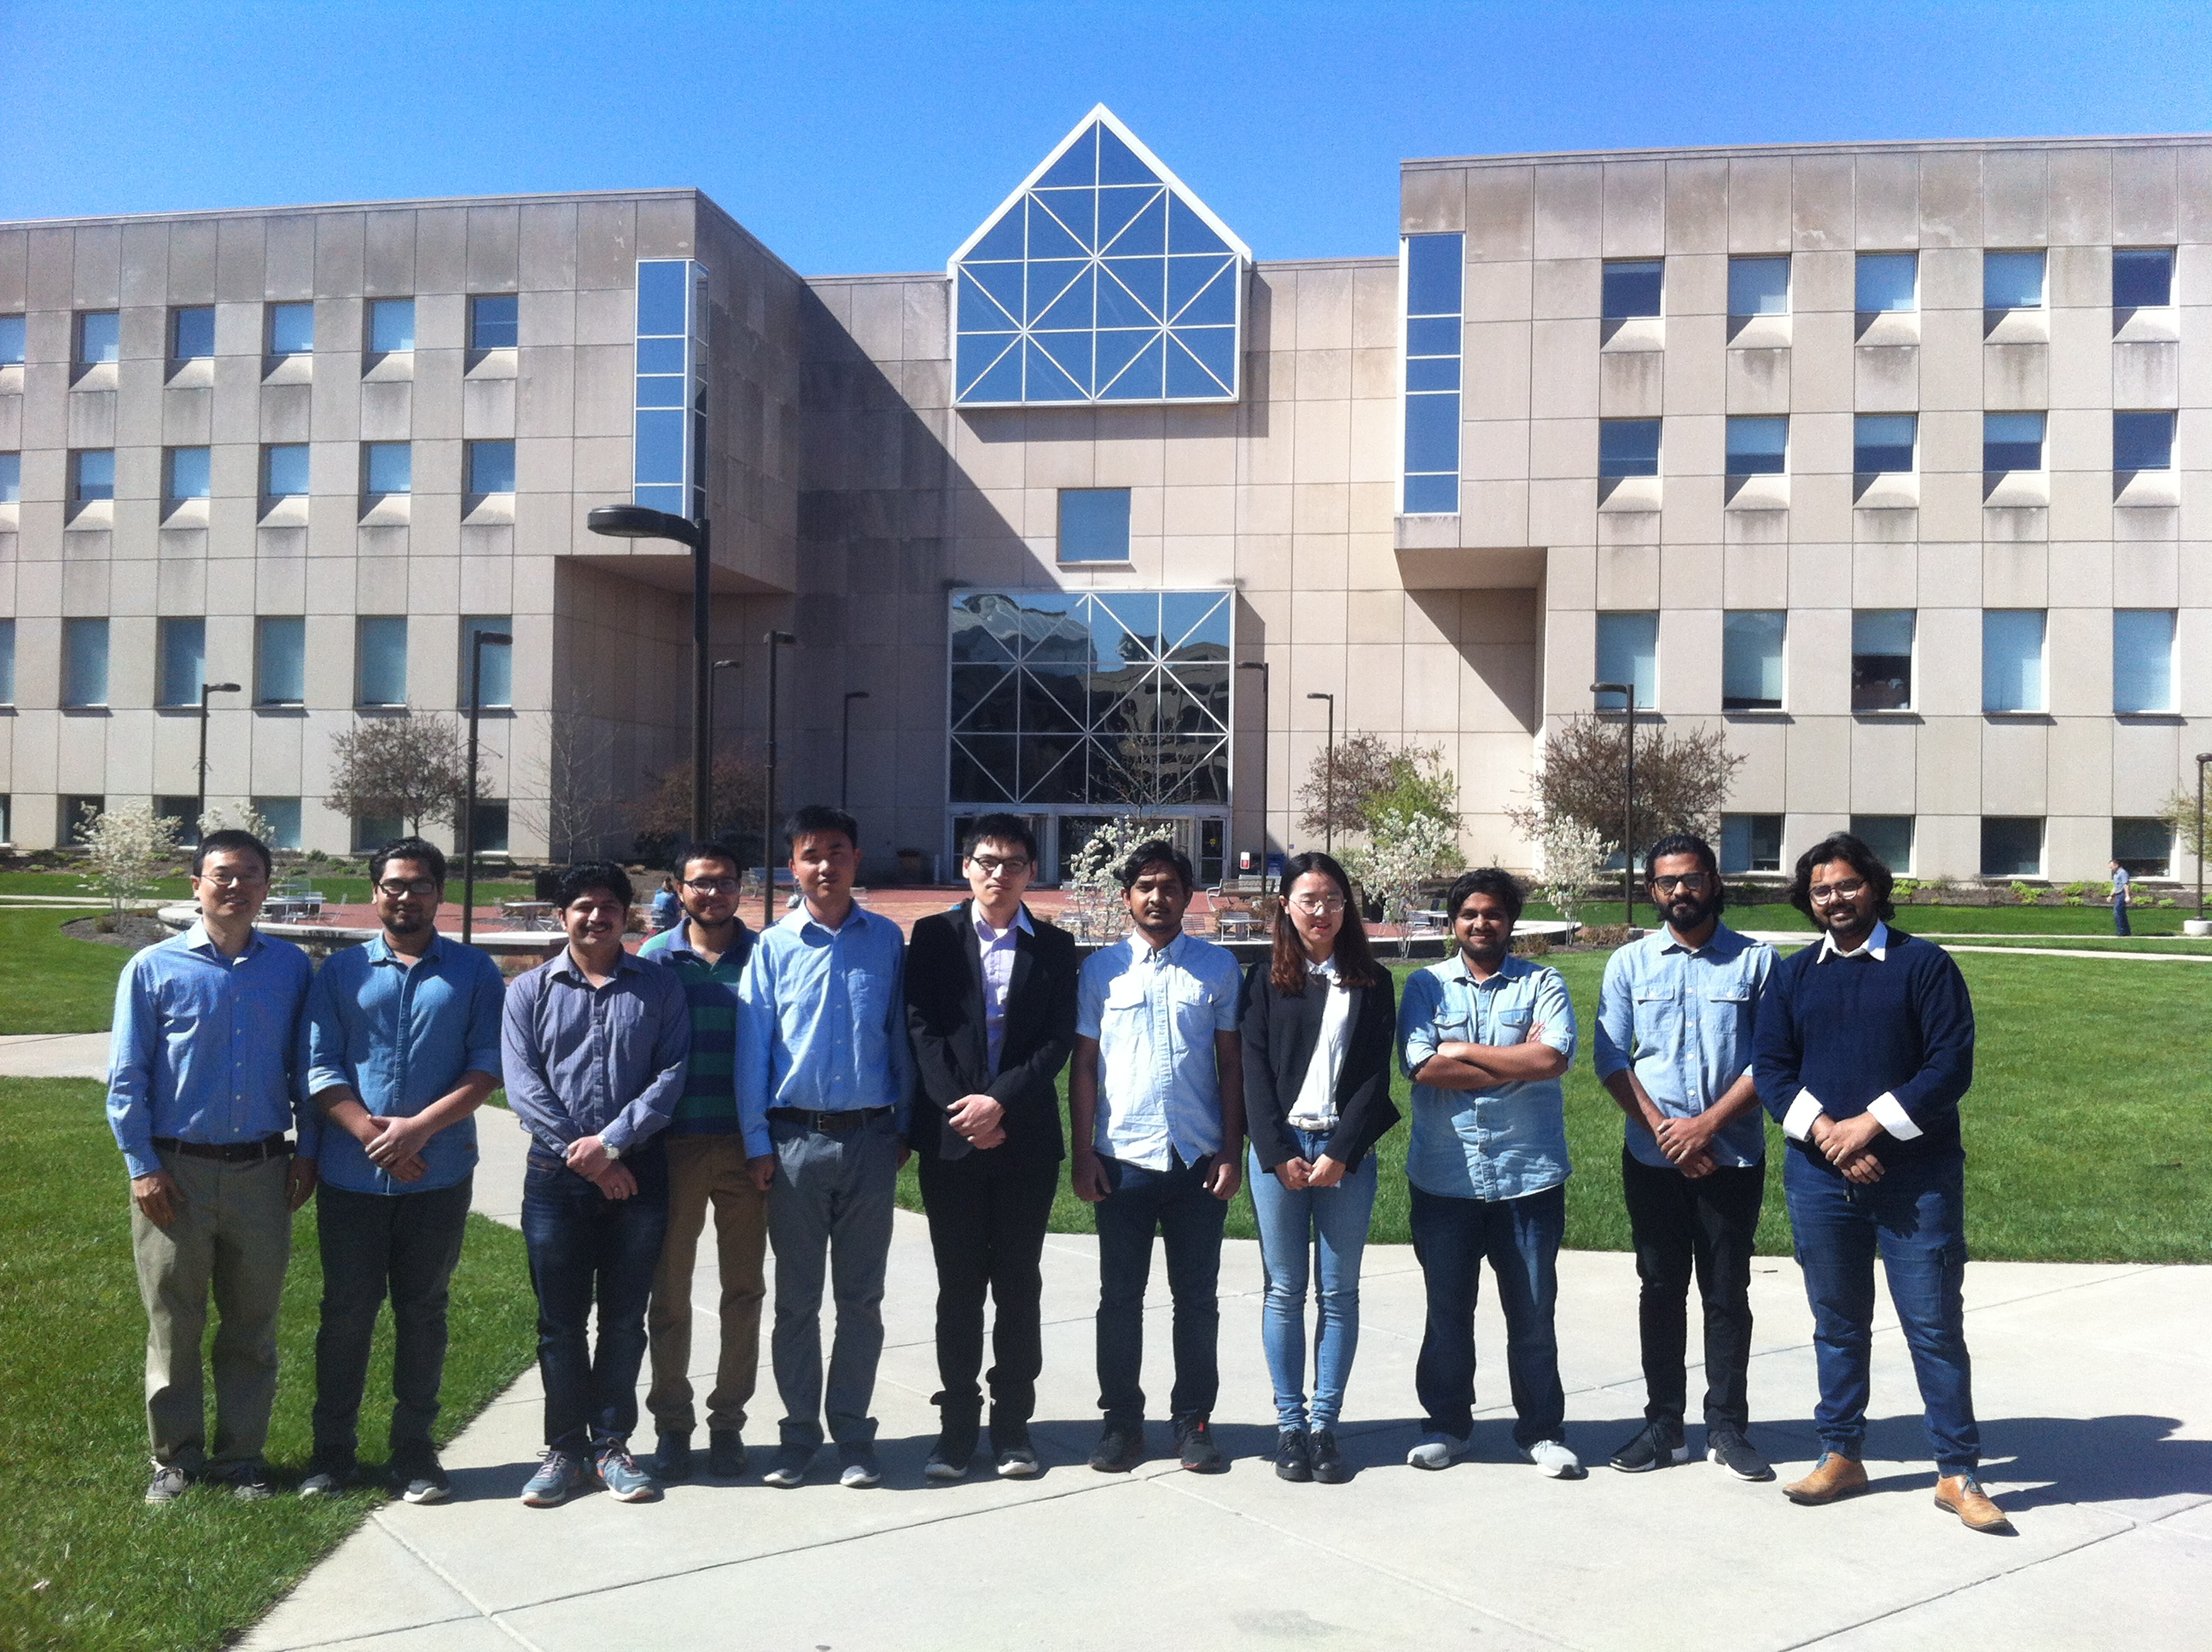 Dr. Zhang's research group